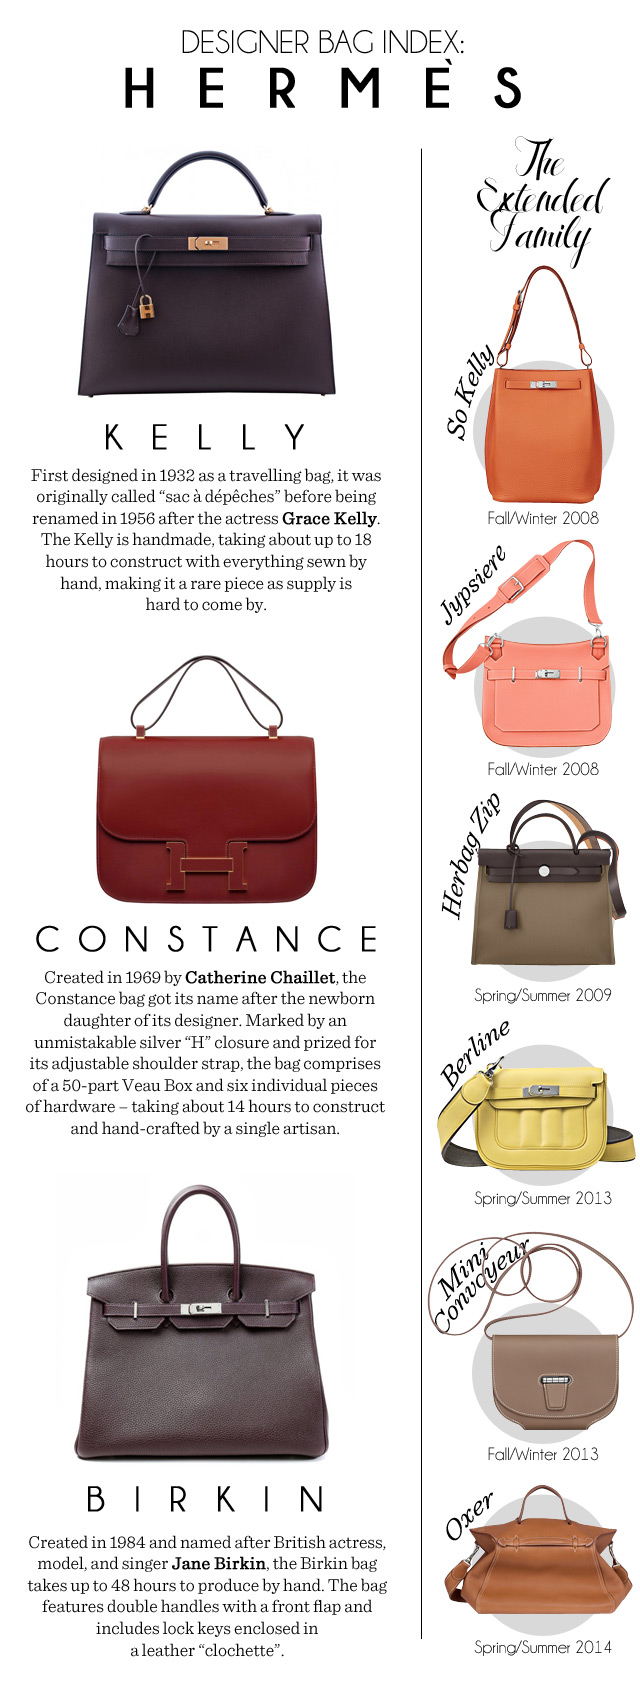 b3ffc8589ee5 Get to know the stories behind three of its most popular design with the fourth  installment of our designer bag index.